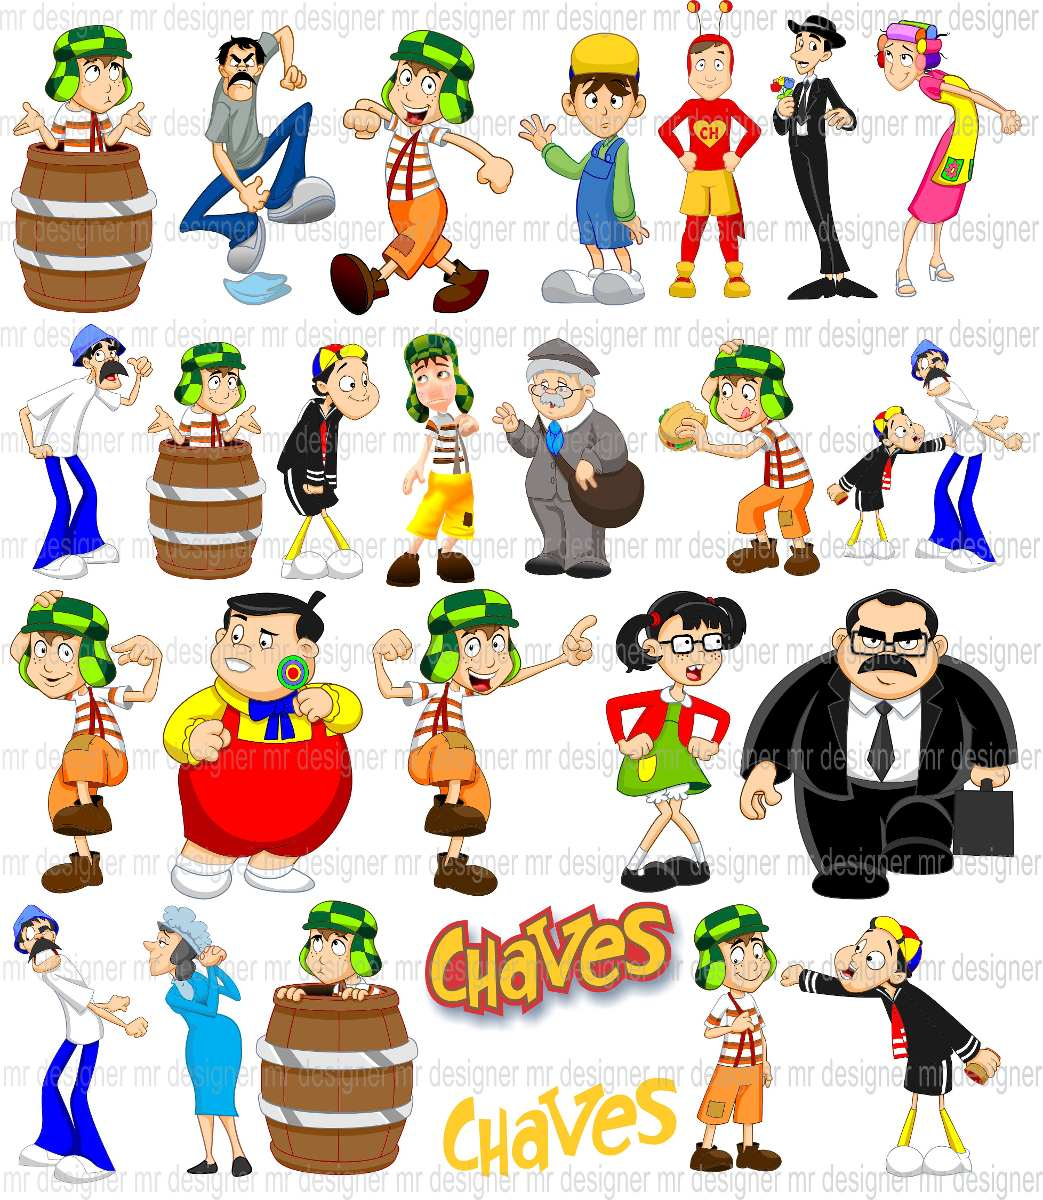 Vetores Chaves Baby E Chaves Chapolim Png E Corel R 20 00 Em